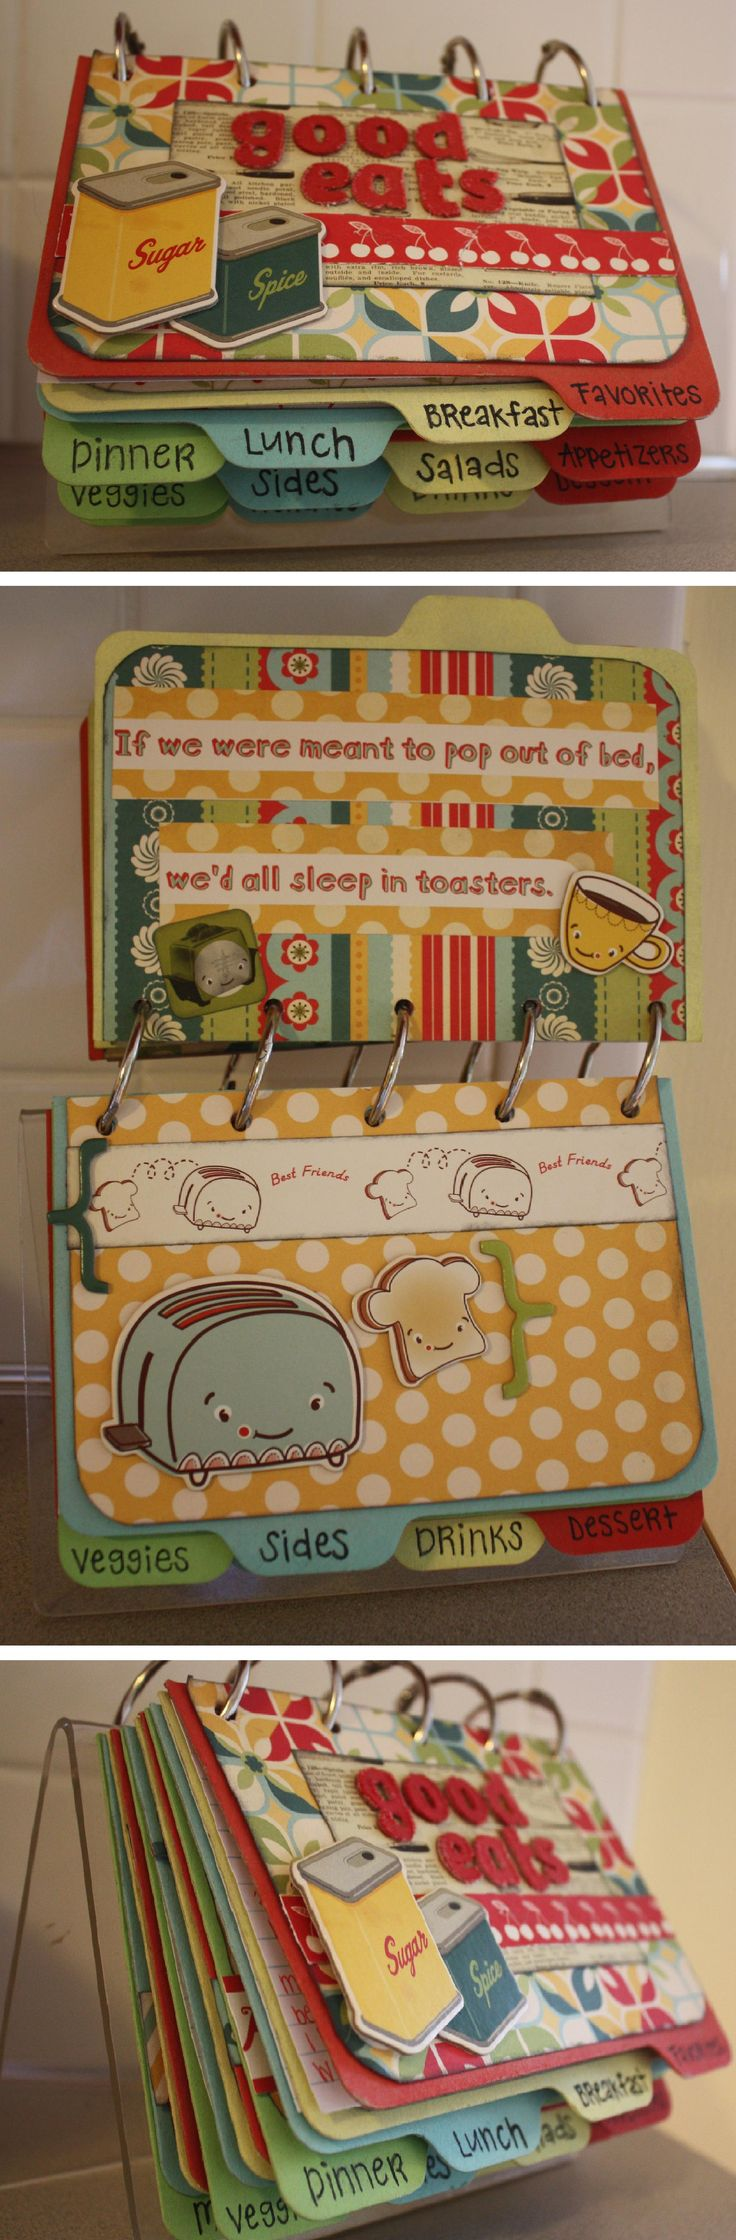 recipe book...this would be great for the kids to have their own books then they can take it w/ them when they move out.